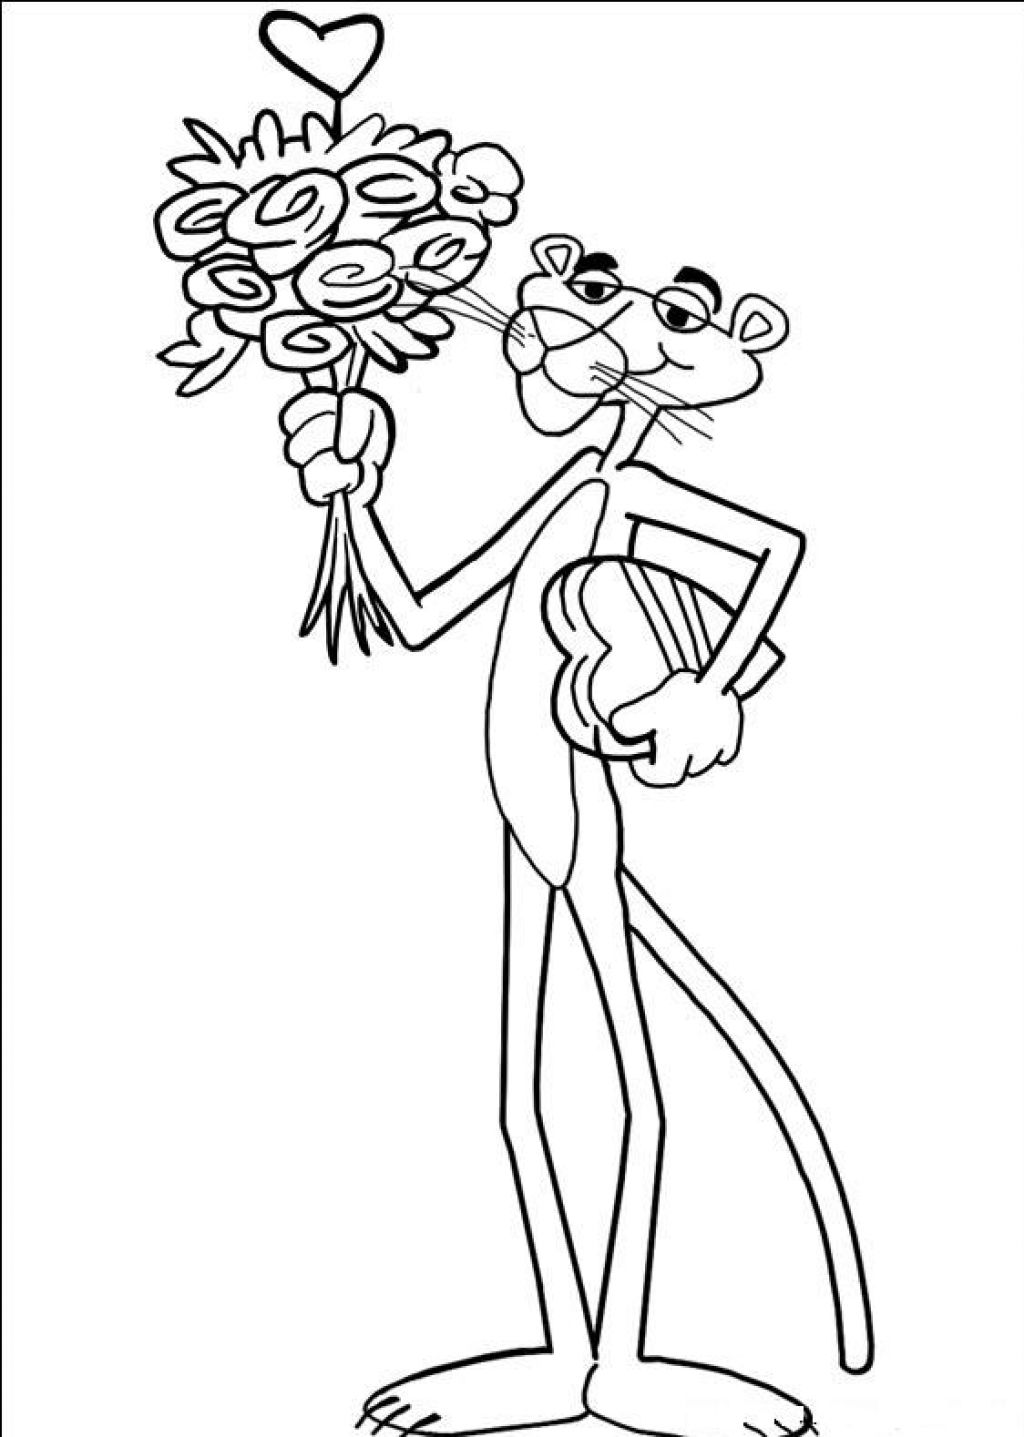 - Free Printable Pink Panther Coloring Pages For Kids